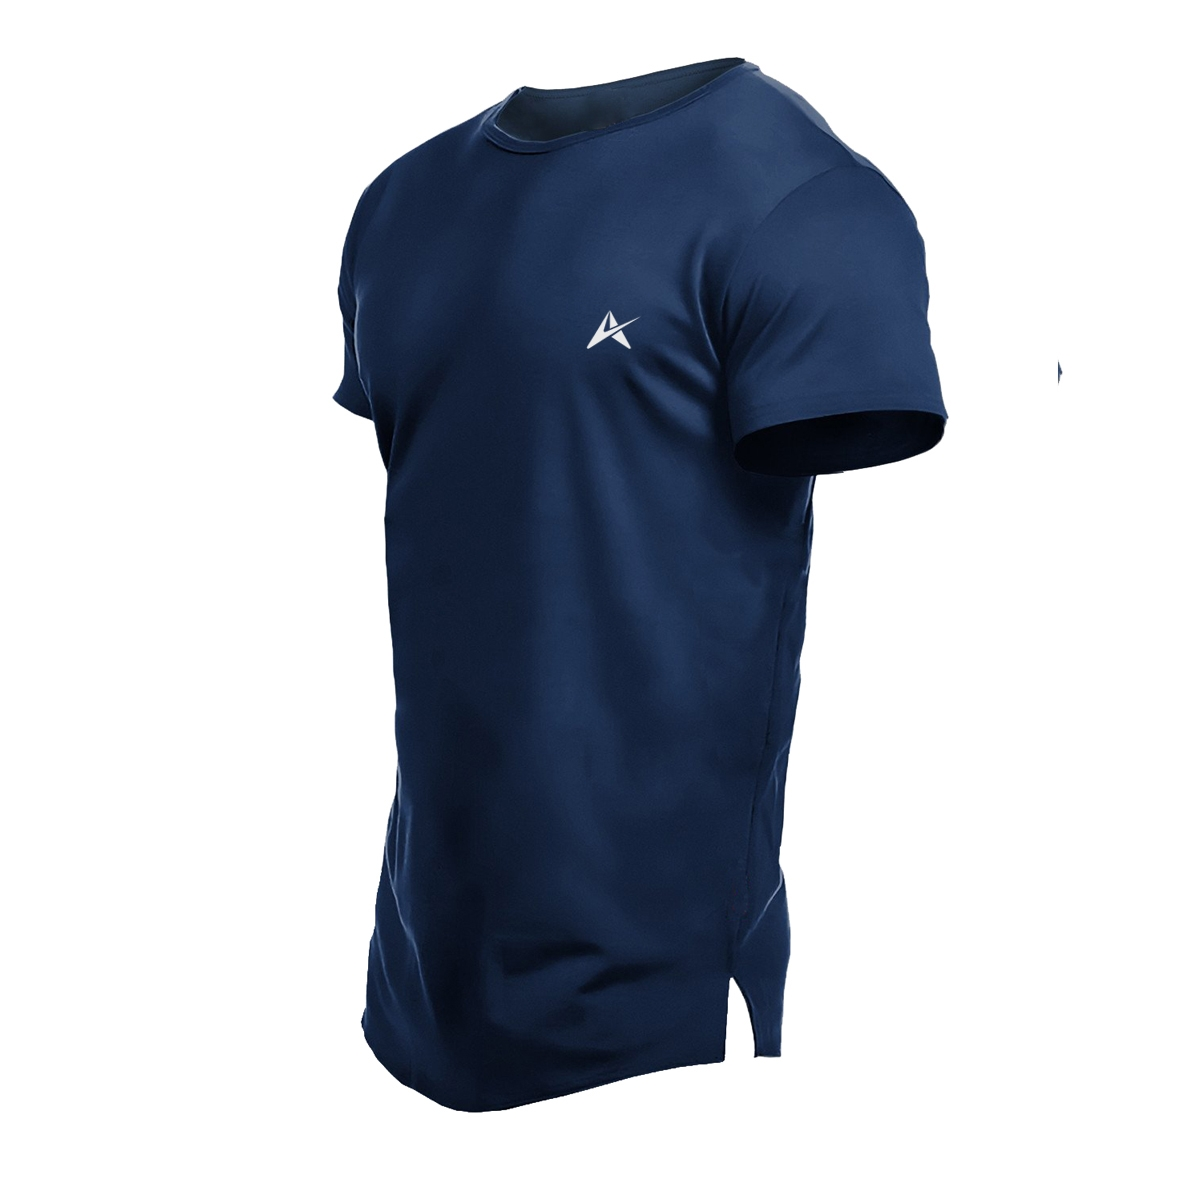 Good threads Men's Cotton Crew neck  T-Shirt AI-008